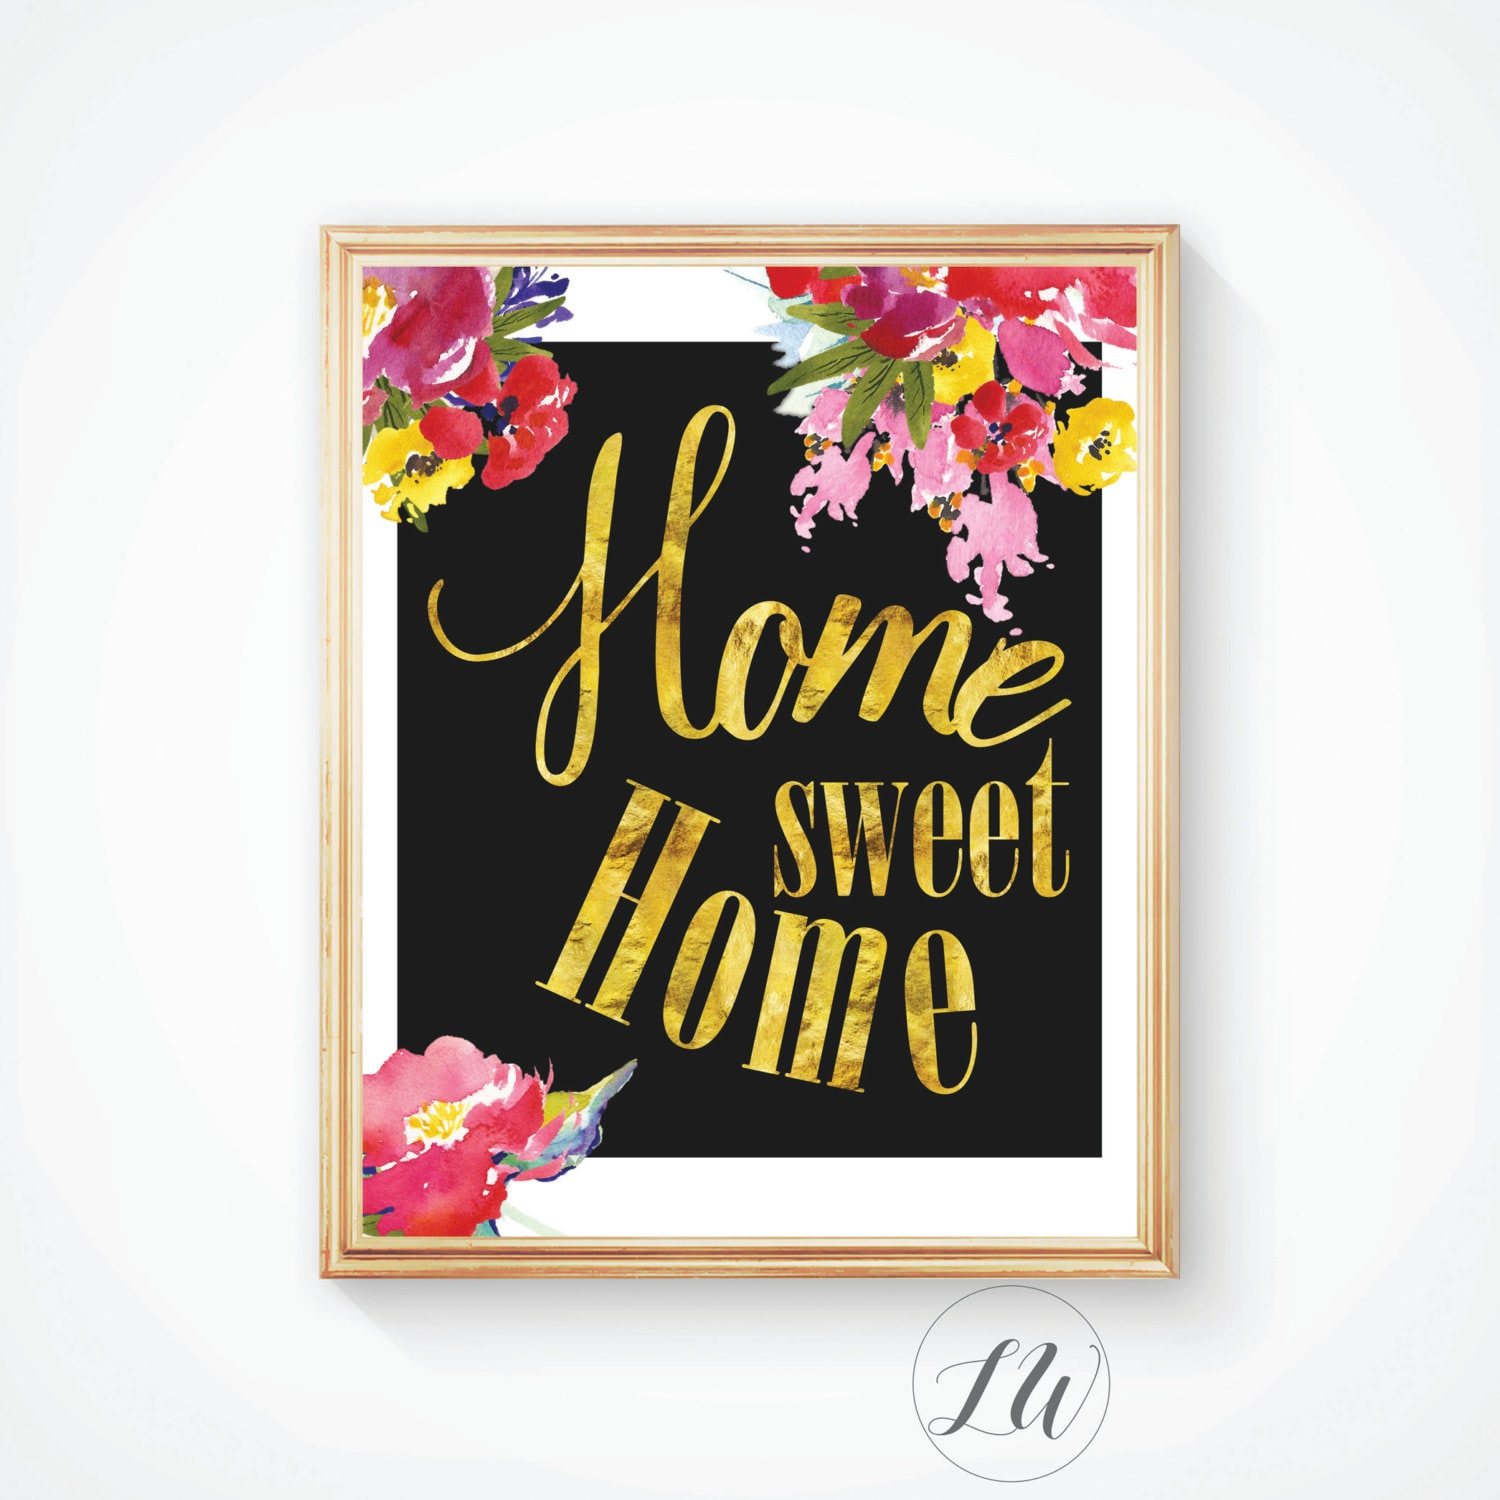 Sweet home print home decor wall decor housewarming gift Home sweet home wall decor